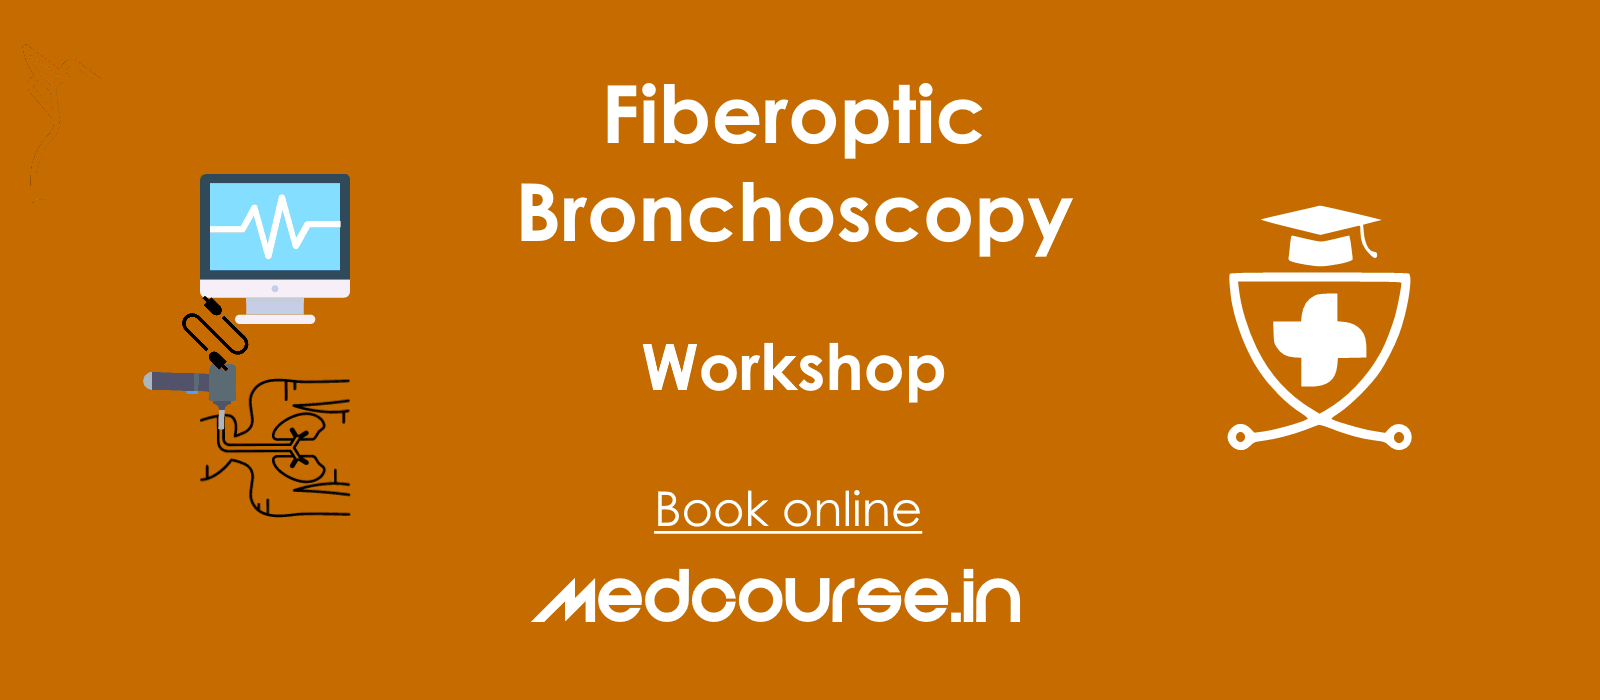 Fiberoptic-bronchoscopy-workshop